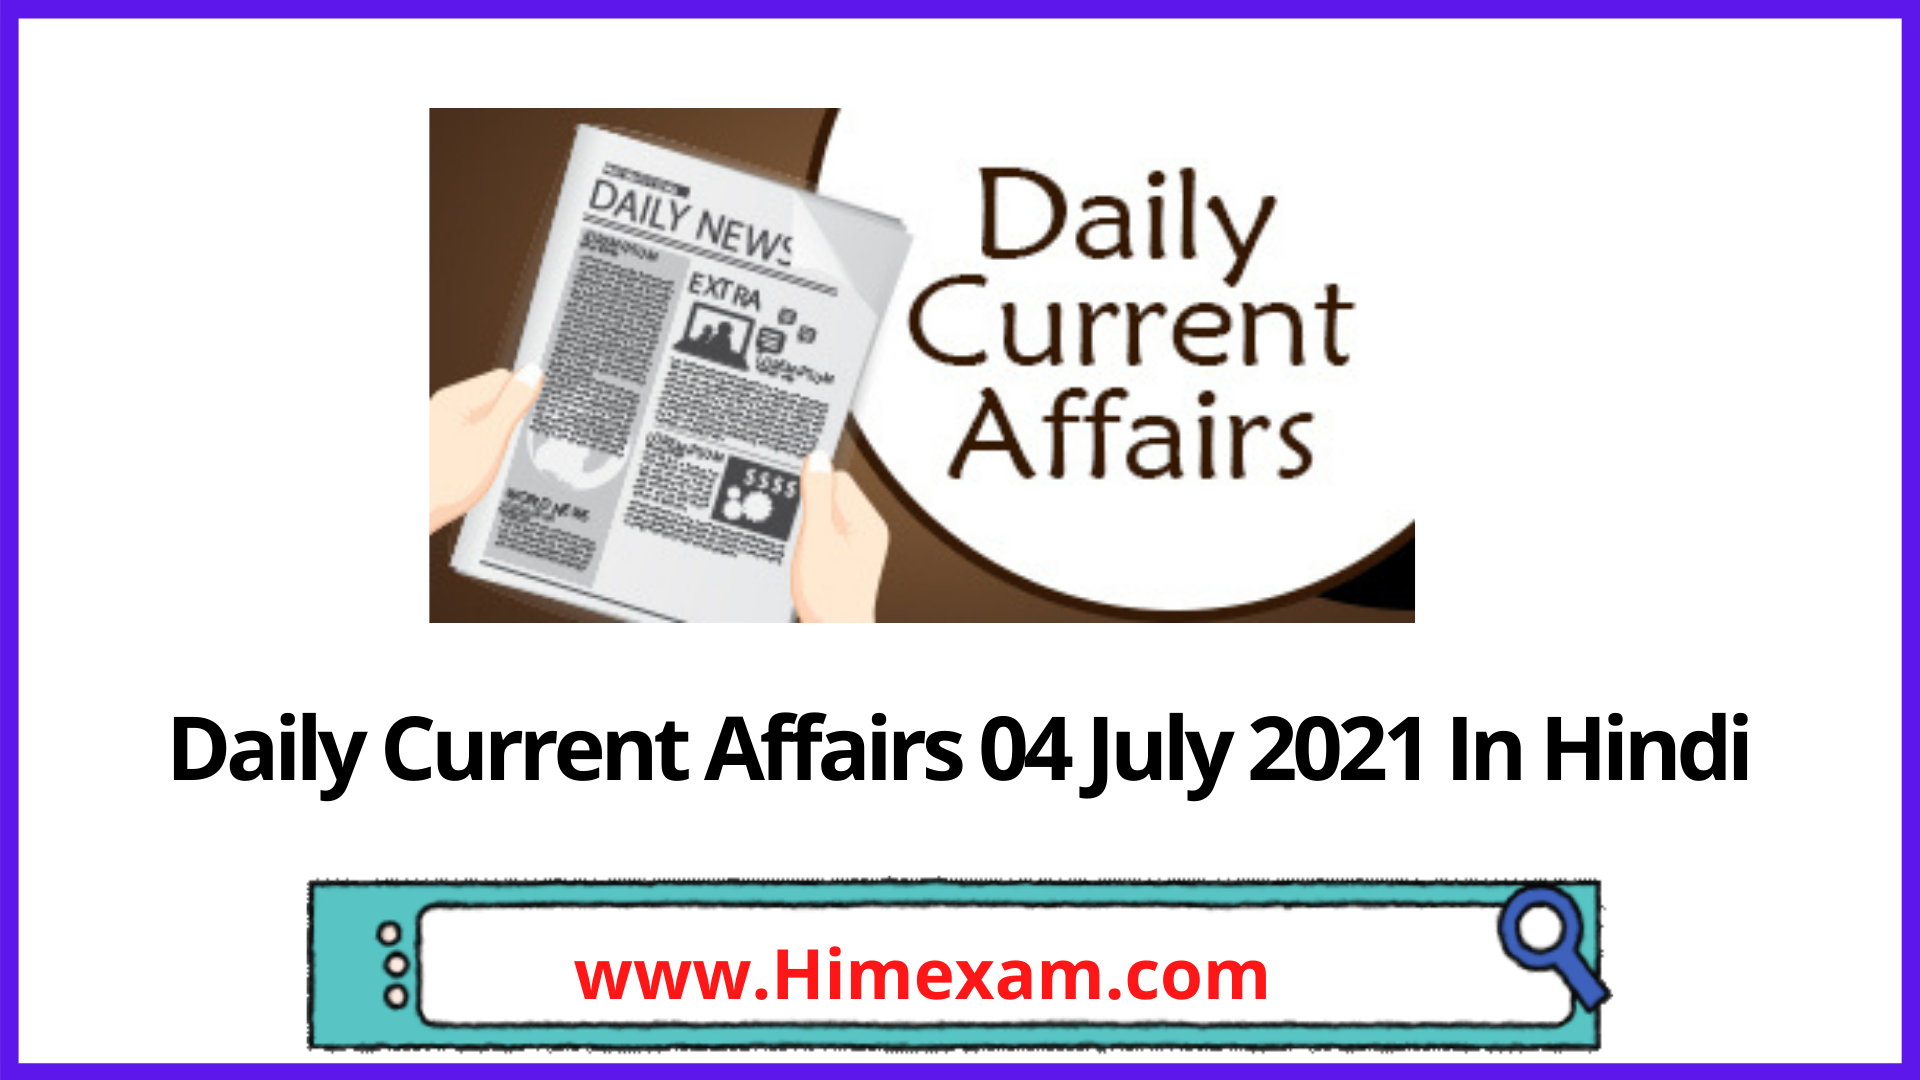 Daily Current Affairs 04 July 2021 In Hindi